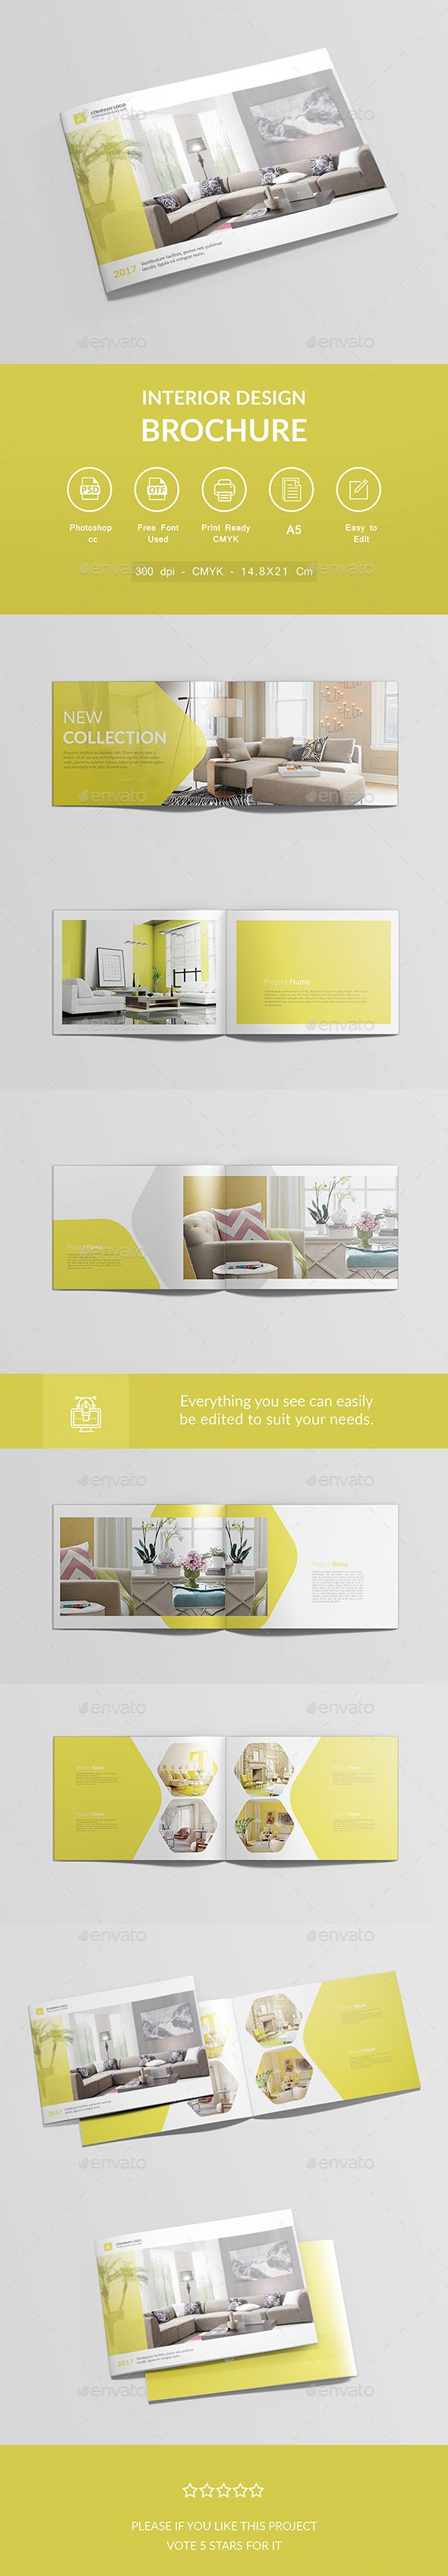 Interior Design Brochure PSD Template